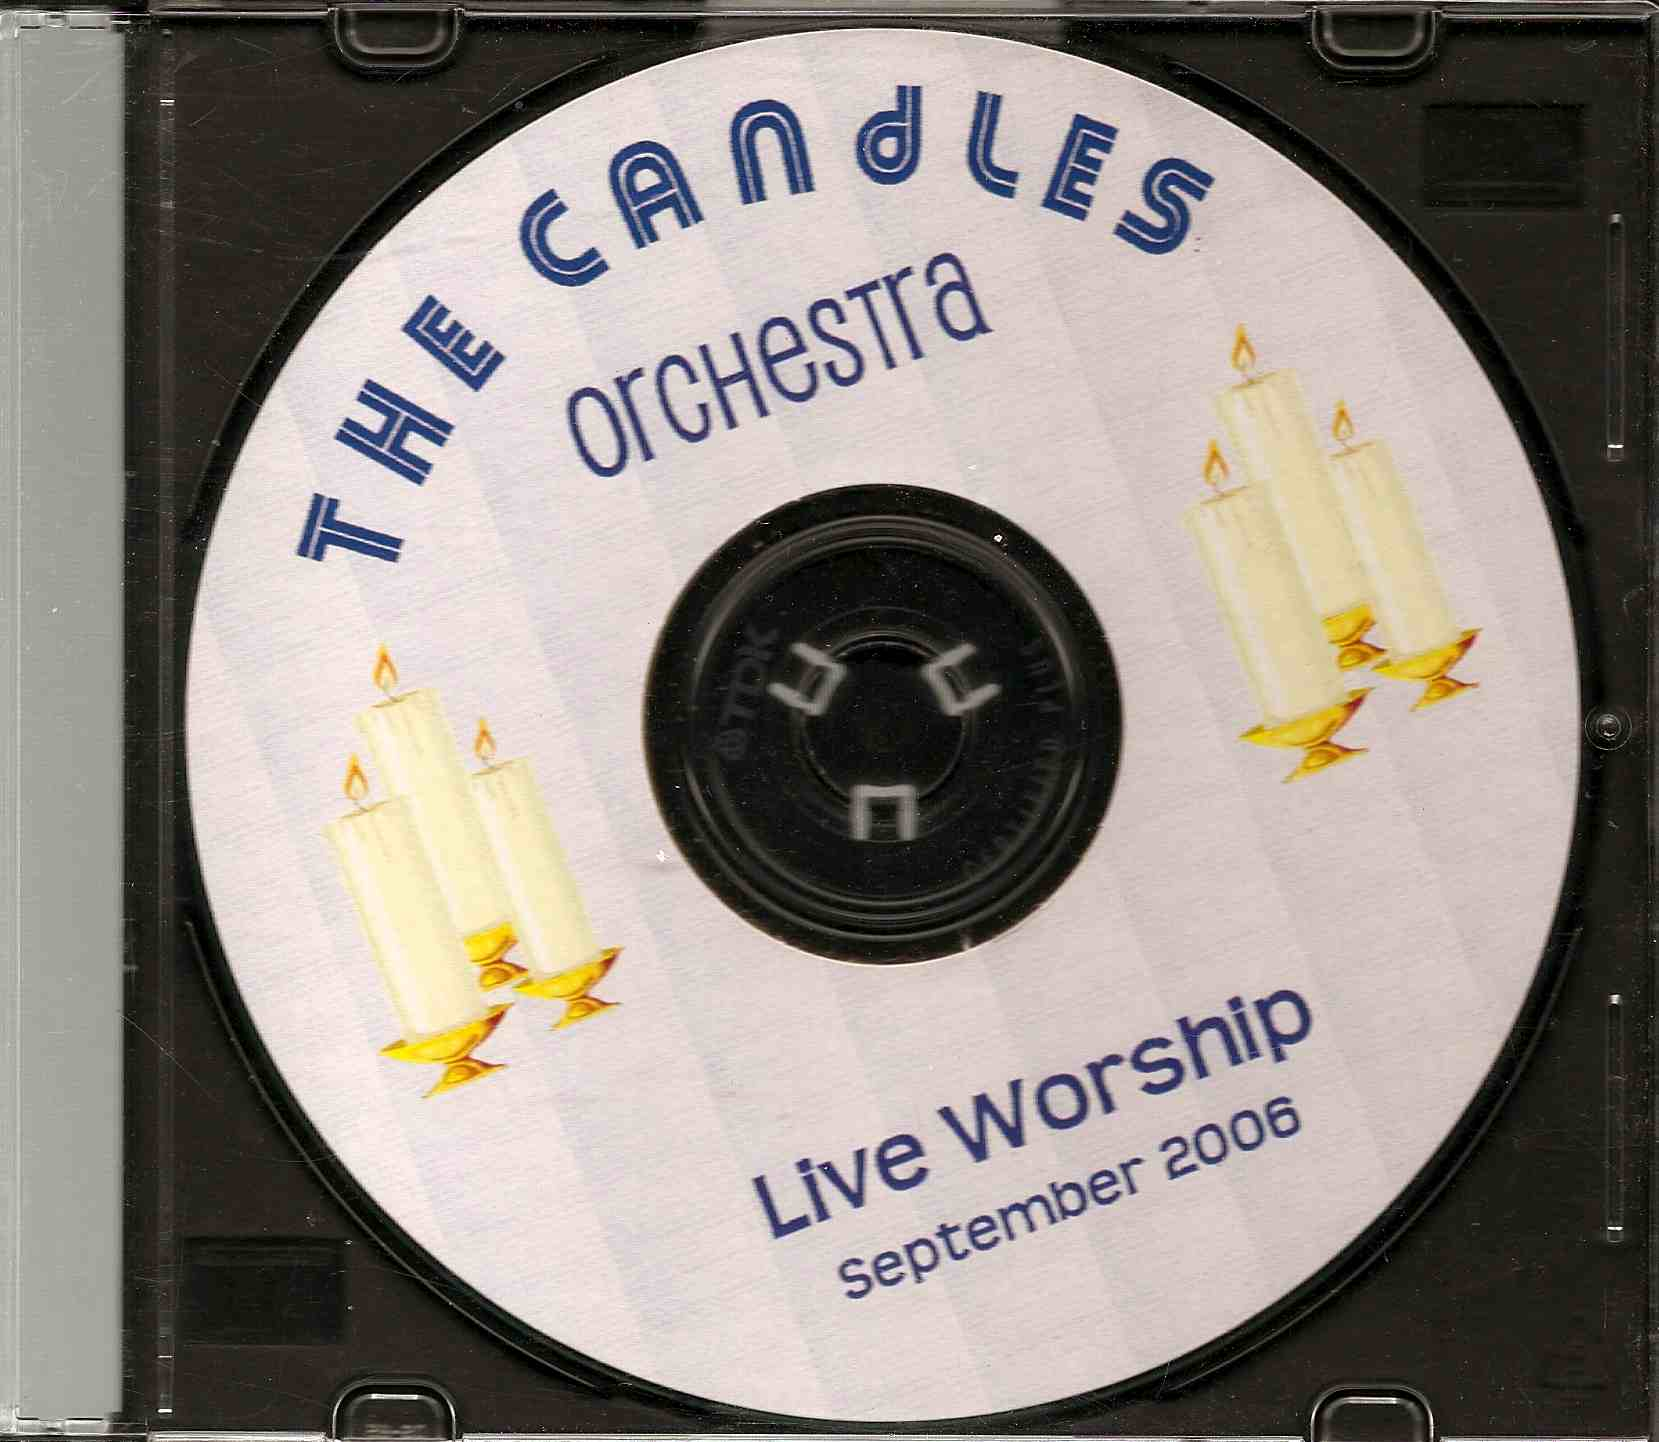 The Candles Orchestra Live Worship September 2006